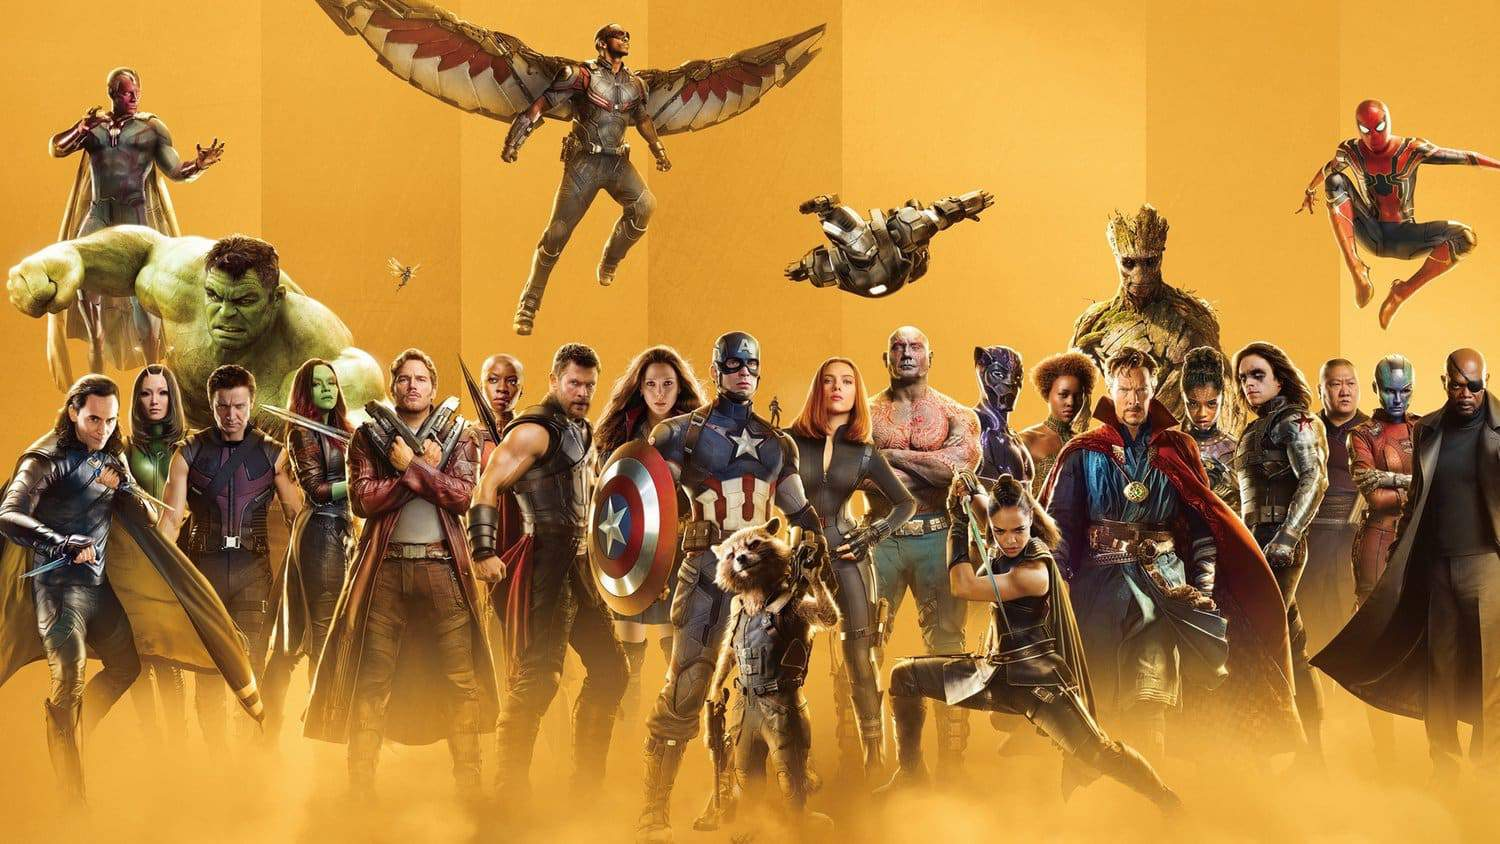 What Will Phase 4 Of The Marvel Cinematic Universe Look Like?